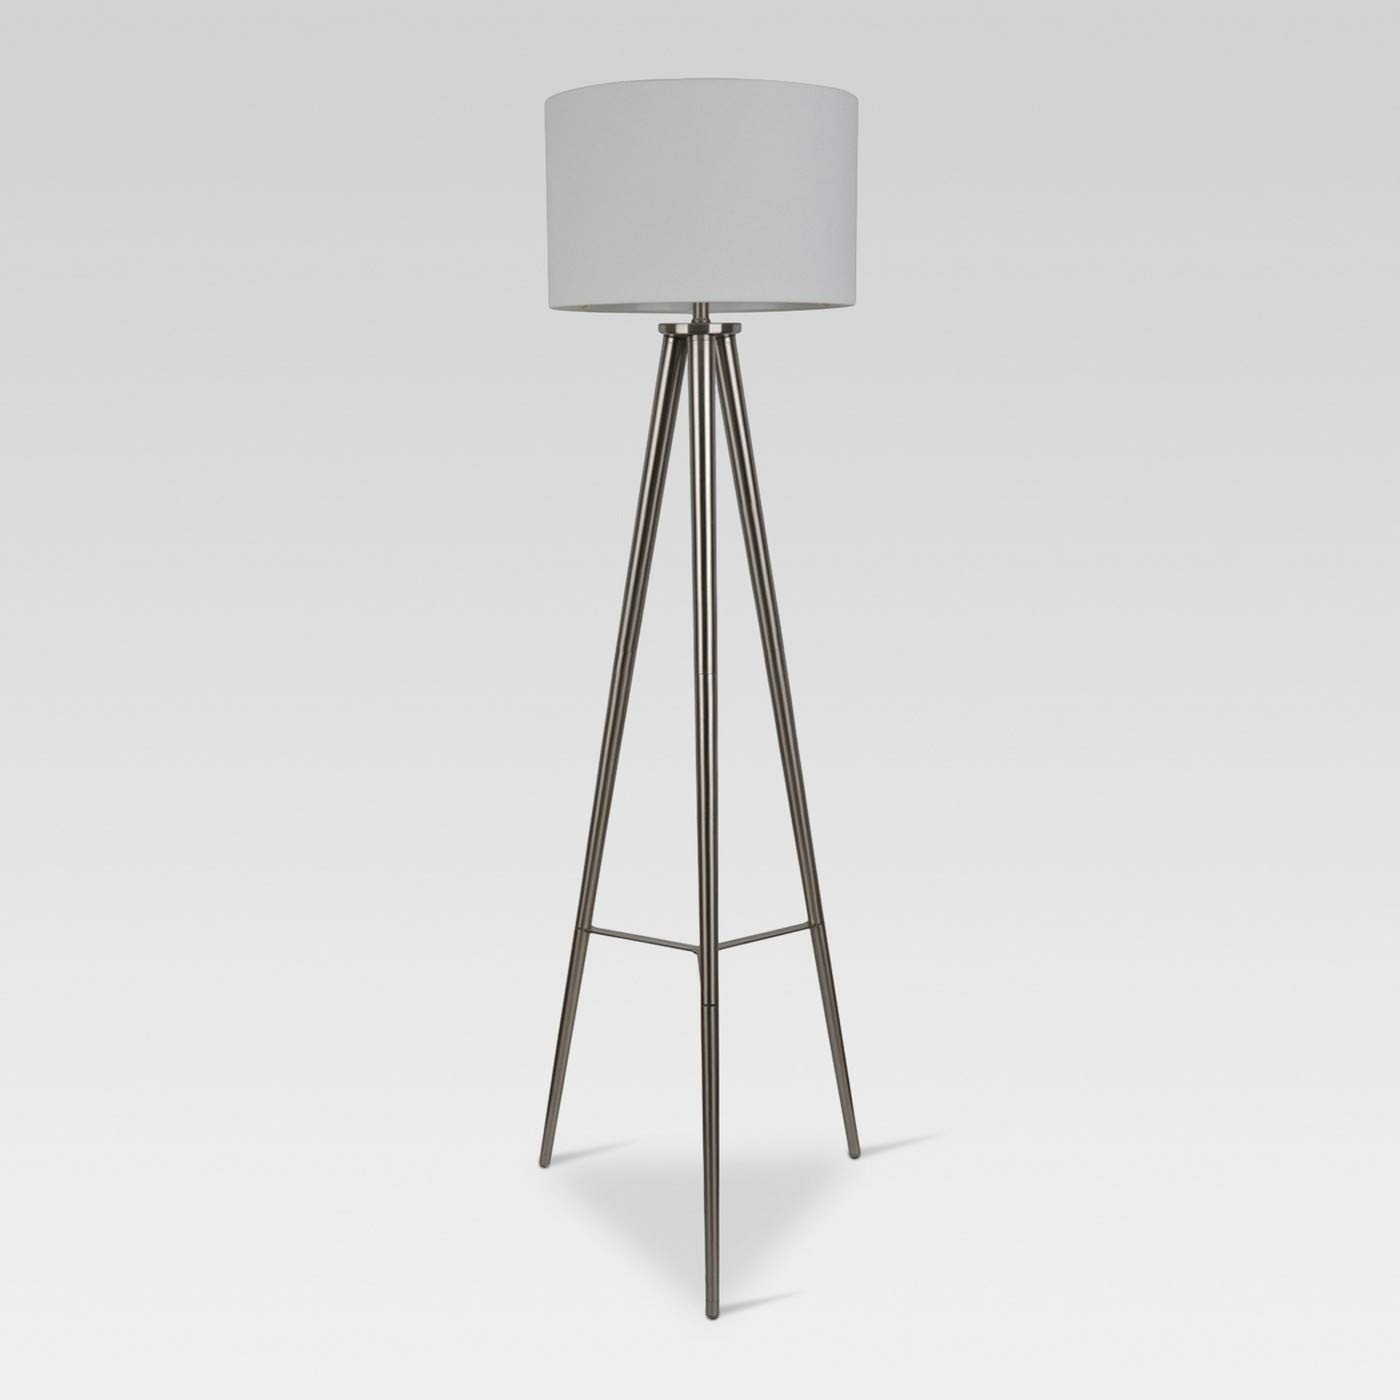 Delavan Metal Tripod Floor Lamp - Nickel